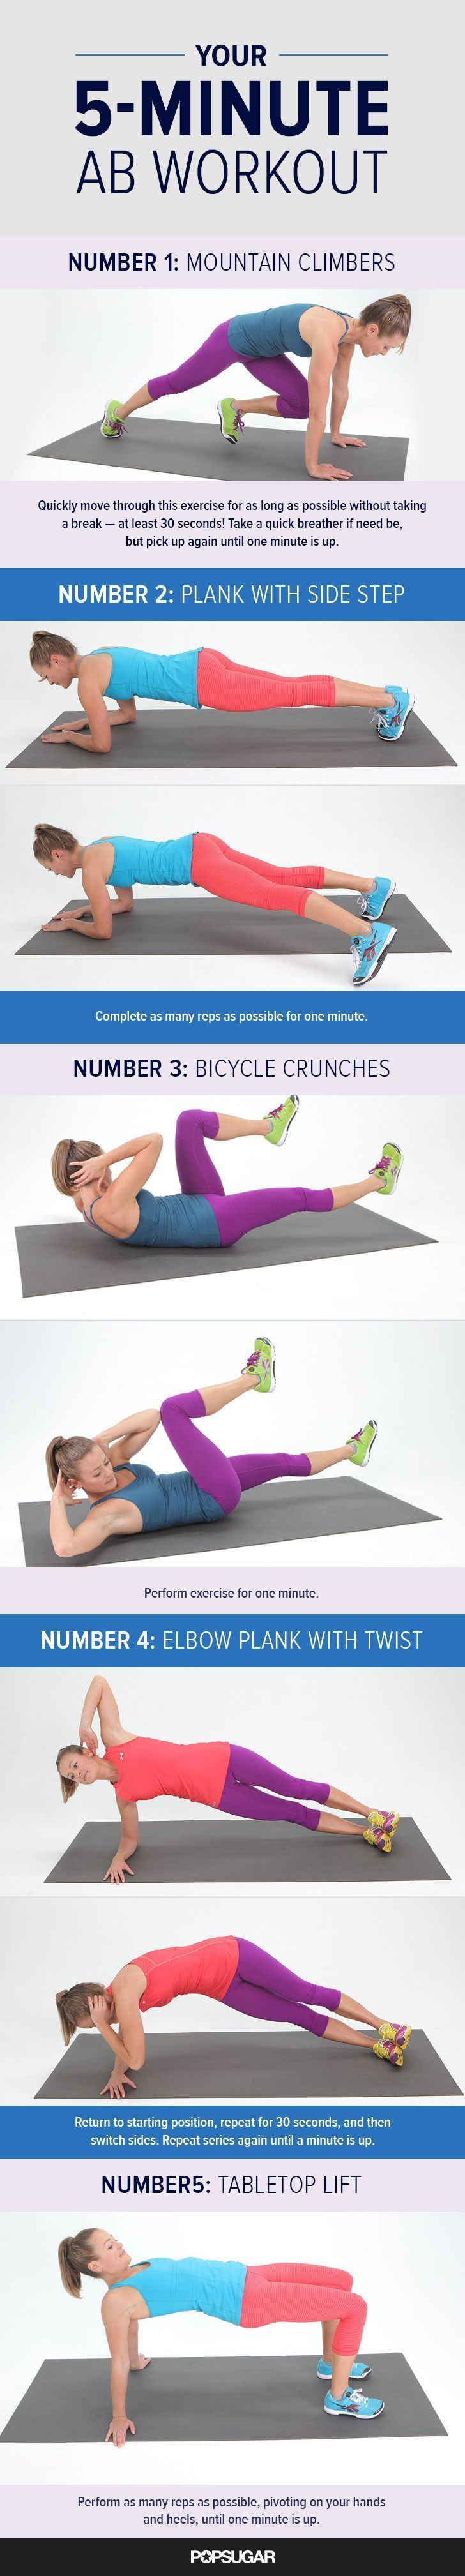 5-Minute Workout For Abs | POPSUGAR Fitness